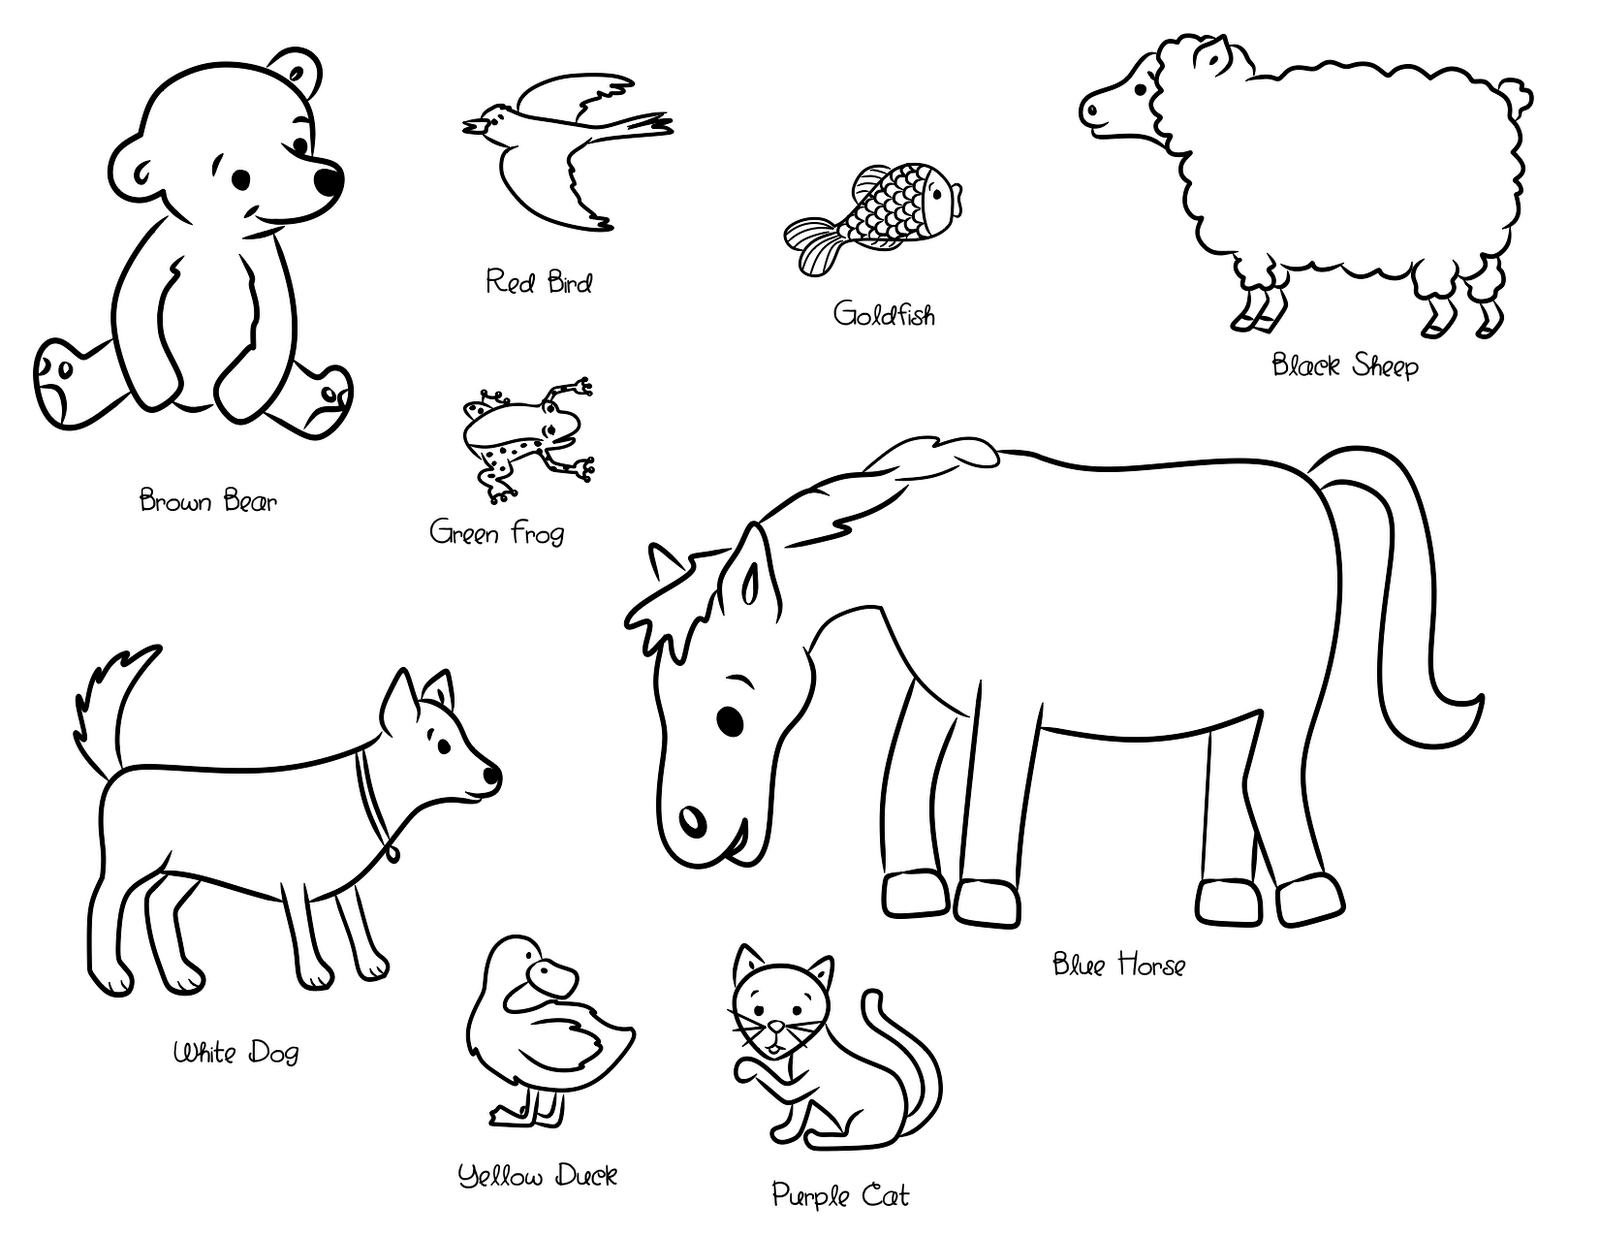 Eric Carle Coloring Pages - Free Printables - MomJunction   1236x1600